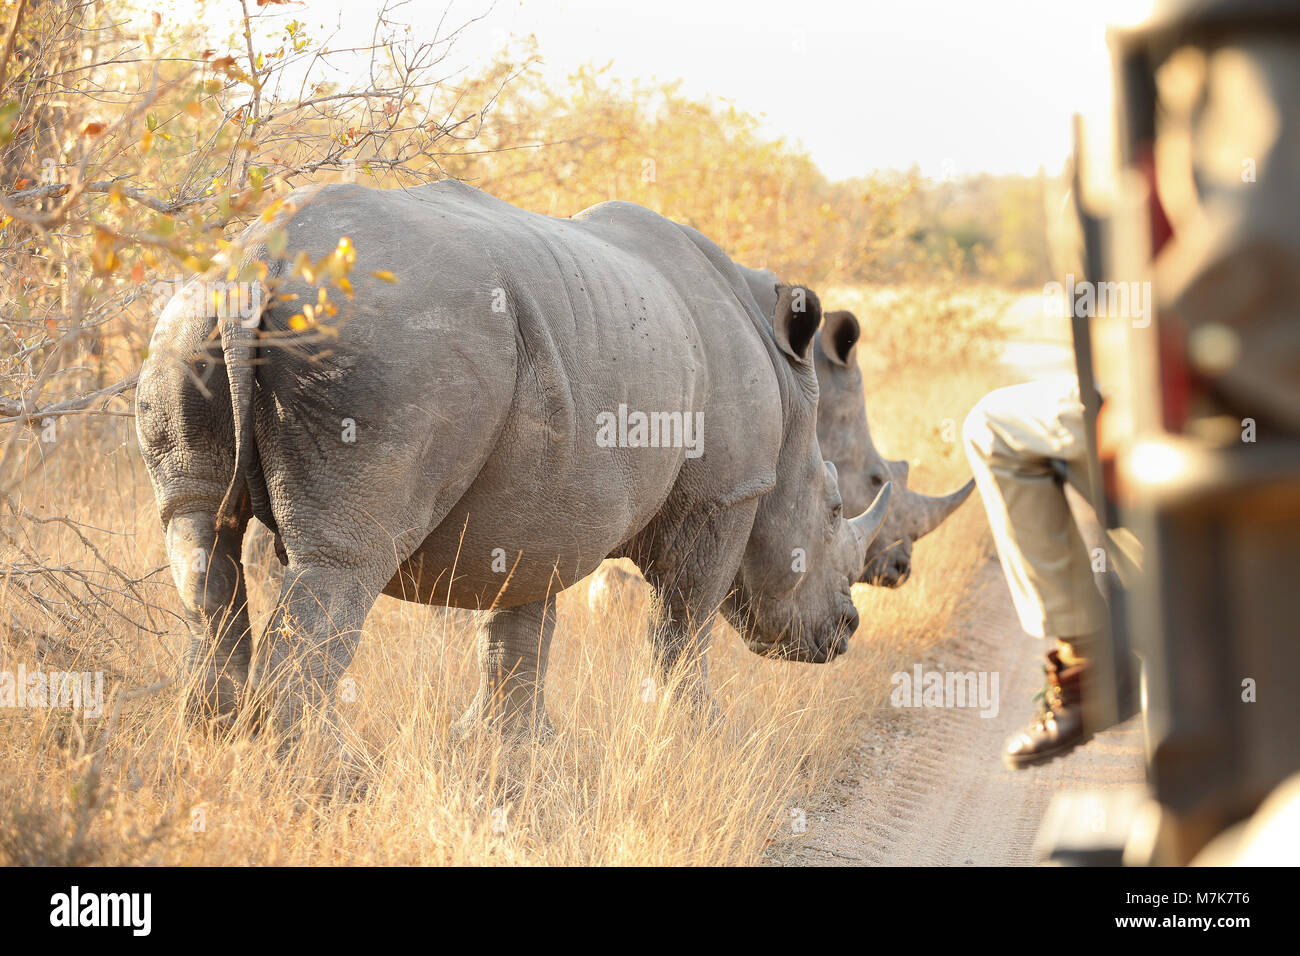 Close up view of an two African White Rhino standing near a safari vehicle - Stock Image